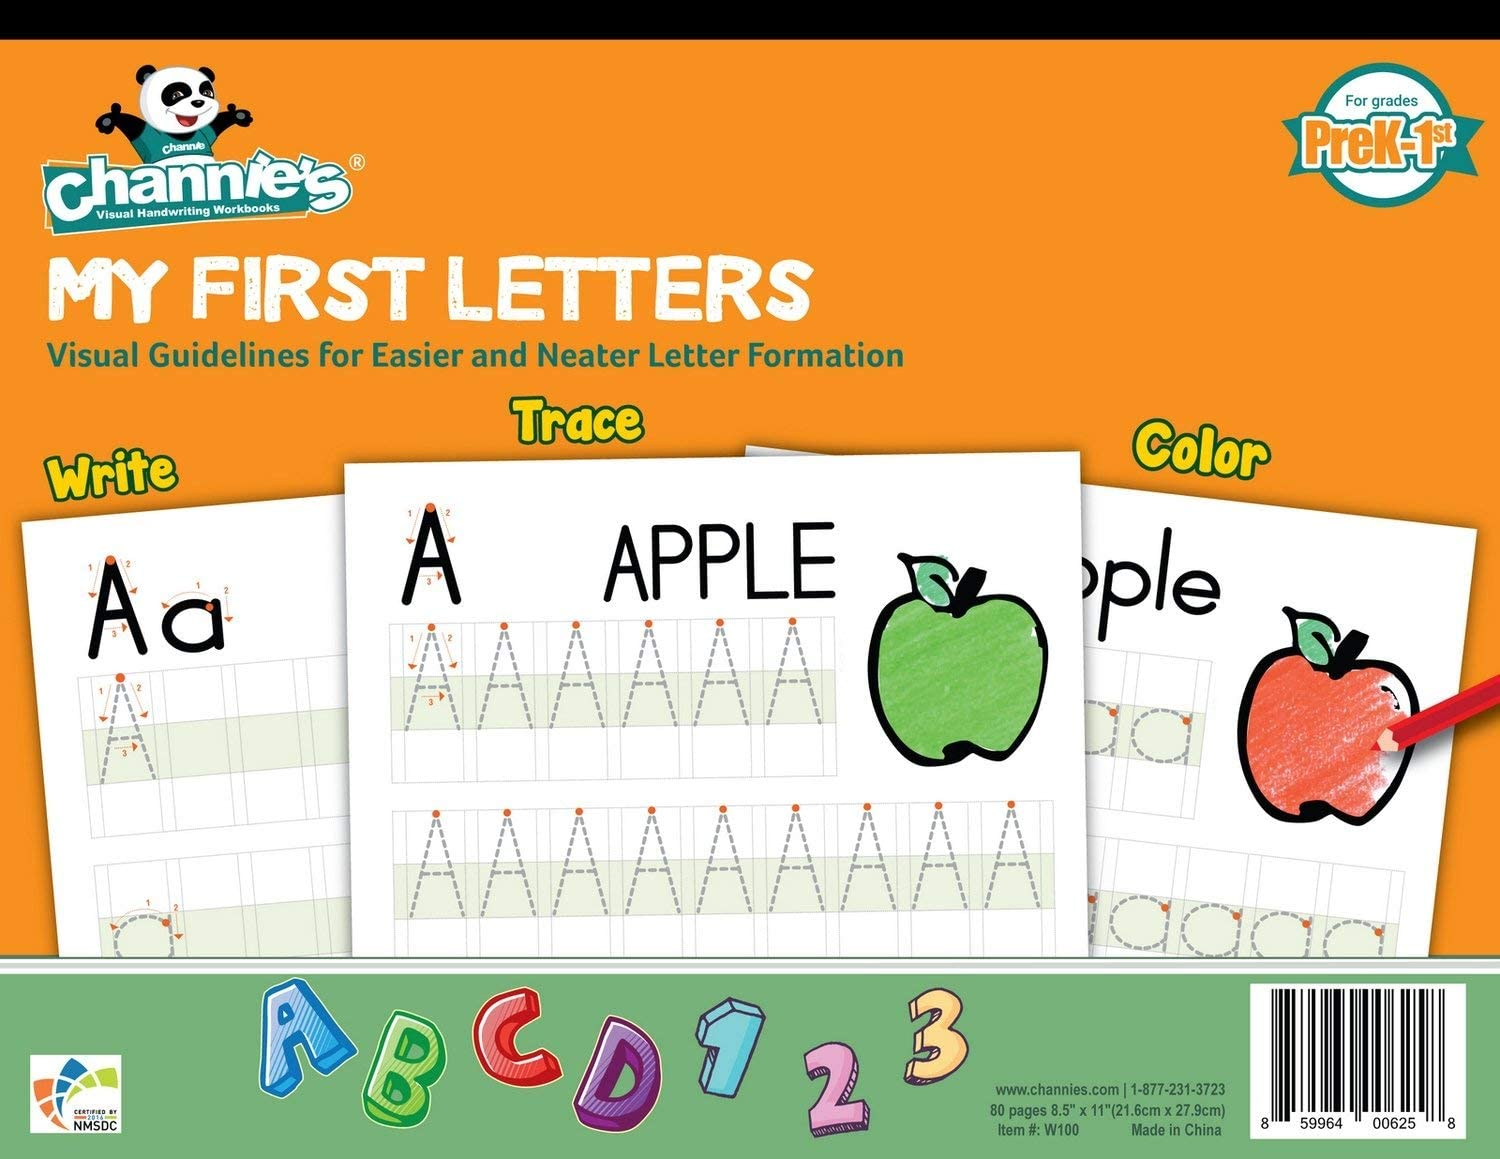 Amazon Com Channie S My First Letters Easy To Trace Write Color And Learn Alphabet Practice Handwriting Printing Workbook 80 Pages Front Back 40 Sheets Grades Prek 1st Size 8 5 X 11 Office Products